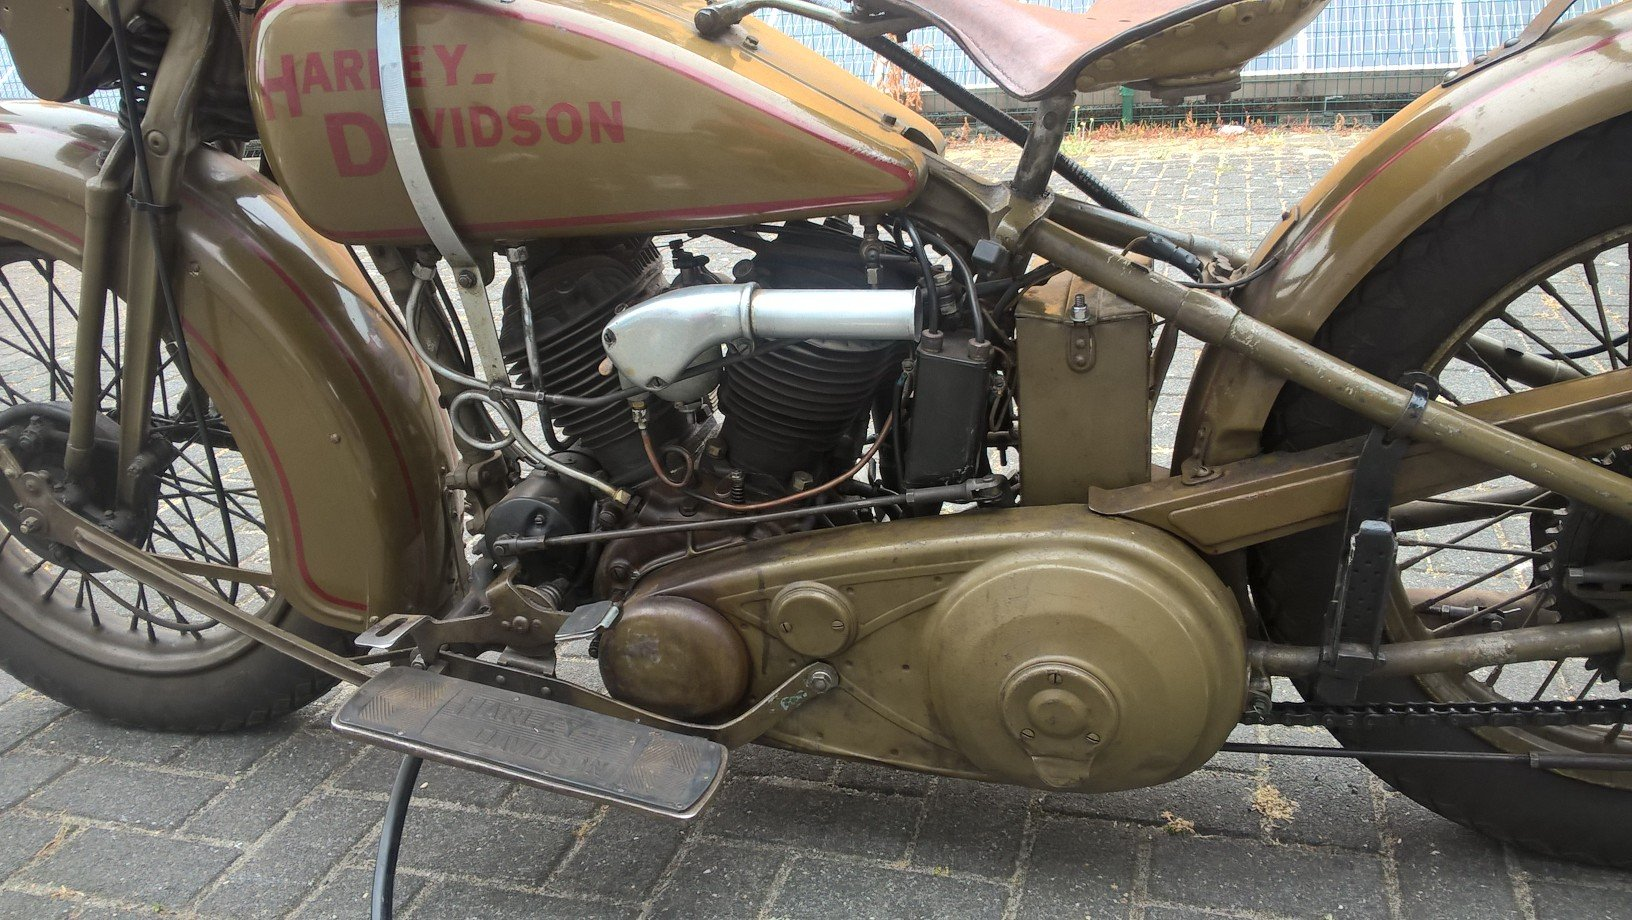 Harley davidson sidecar combination VL 1200 1932 SOLD (picture 6 of 6)